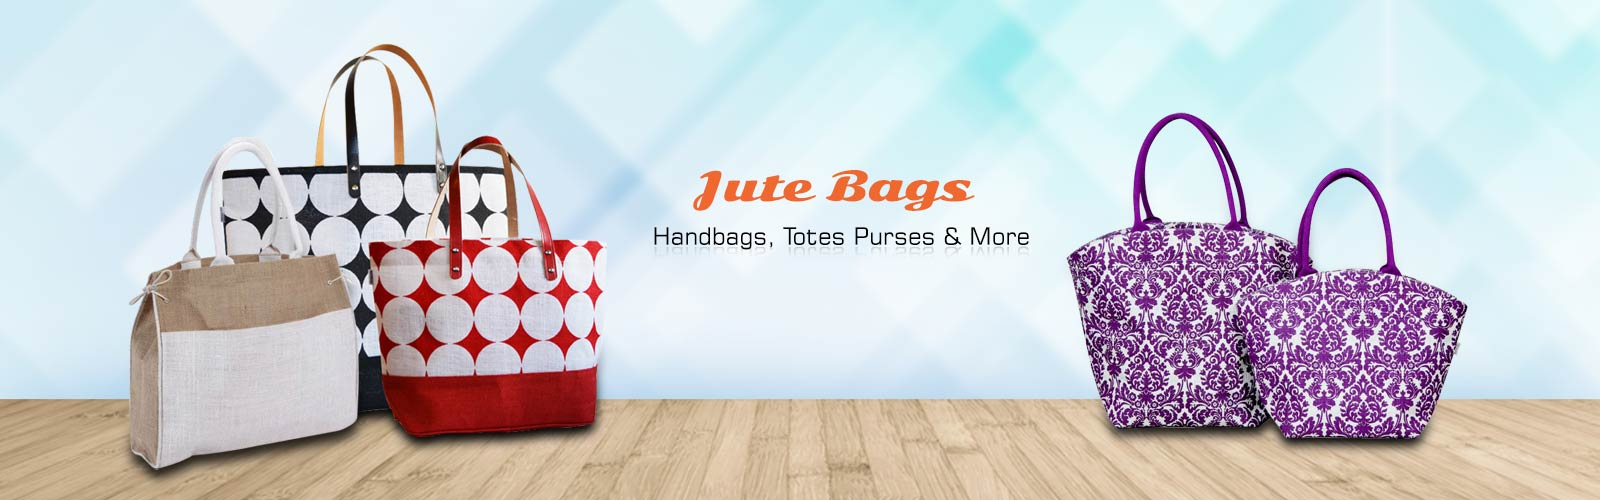 Wholesale Jute Bag Supplier in Melbourne